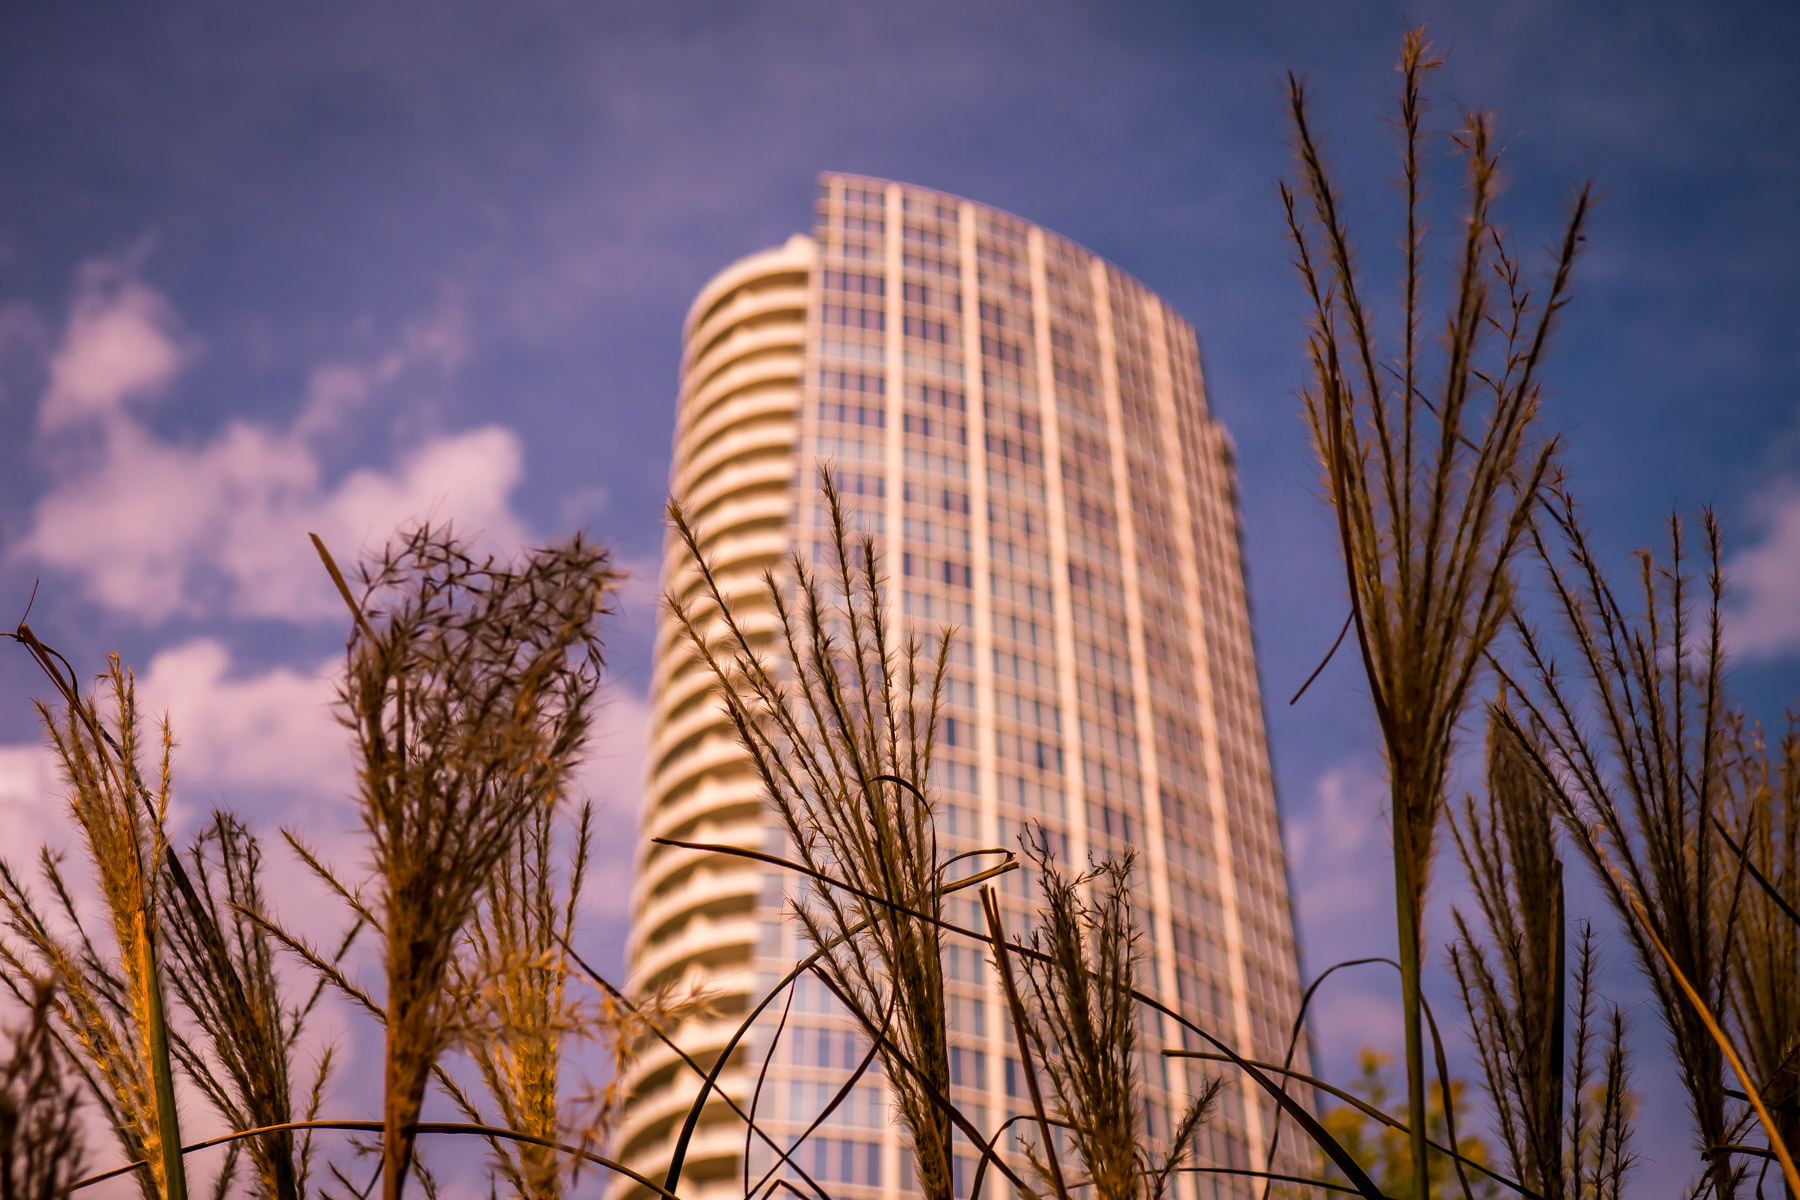 Tall grass grows in Klyde Warren Park near the Dallas Arts District's Museum Tower.